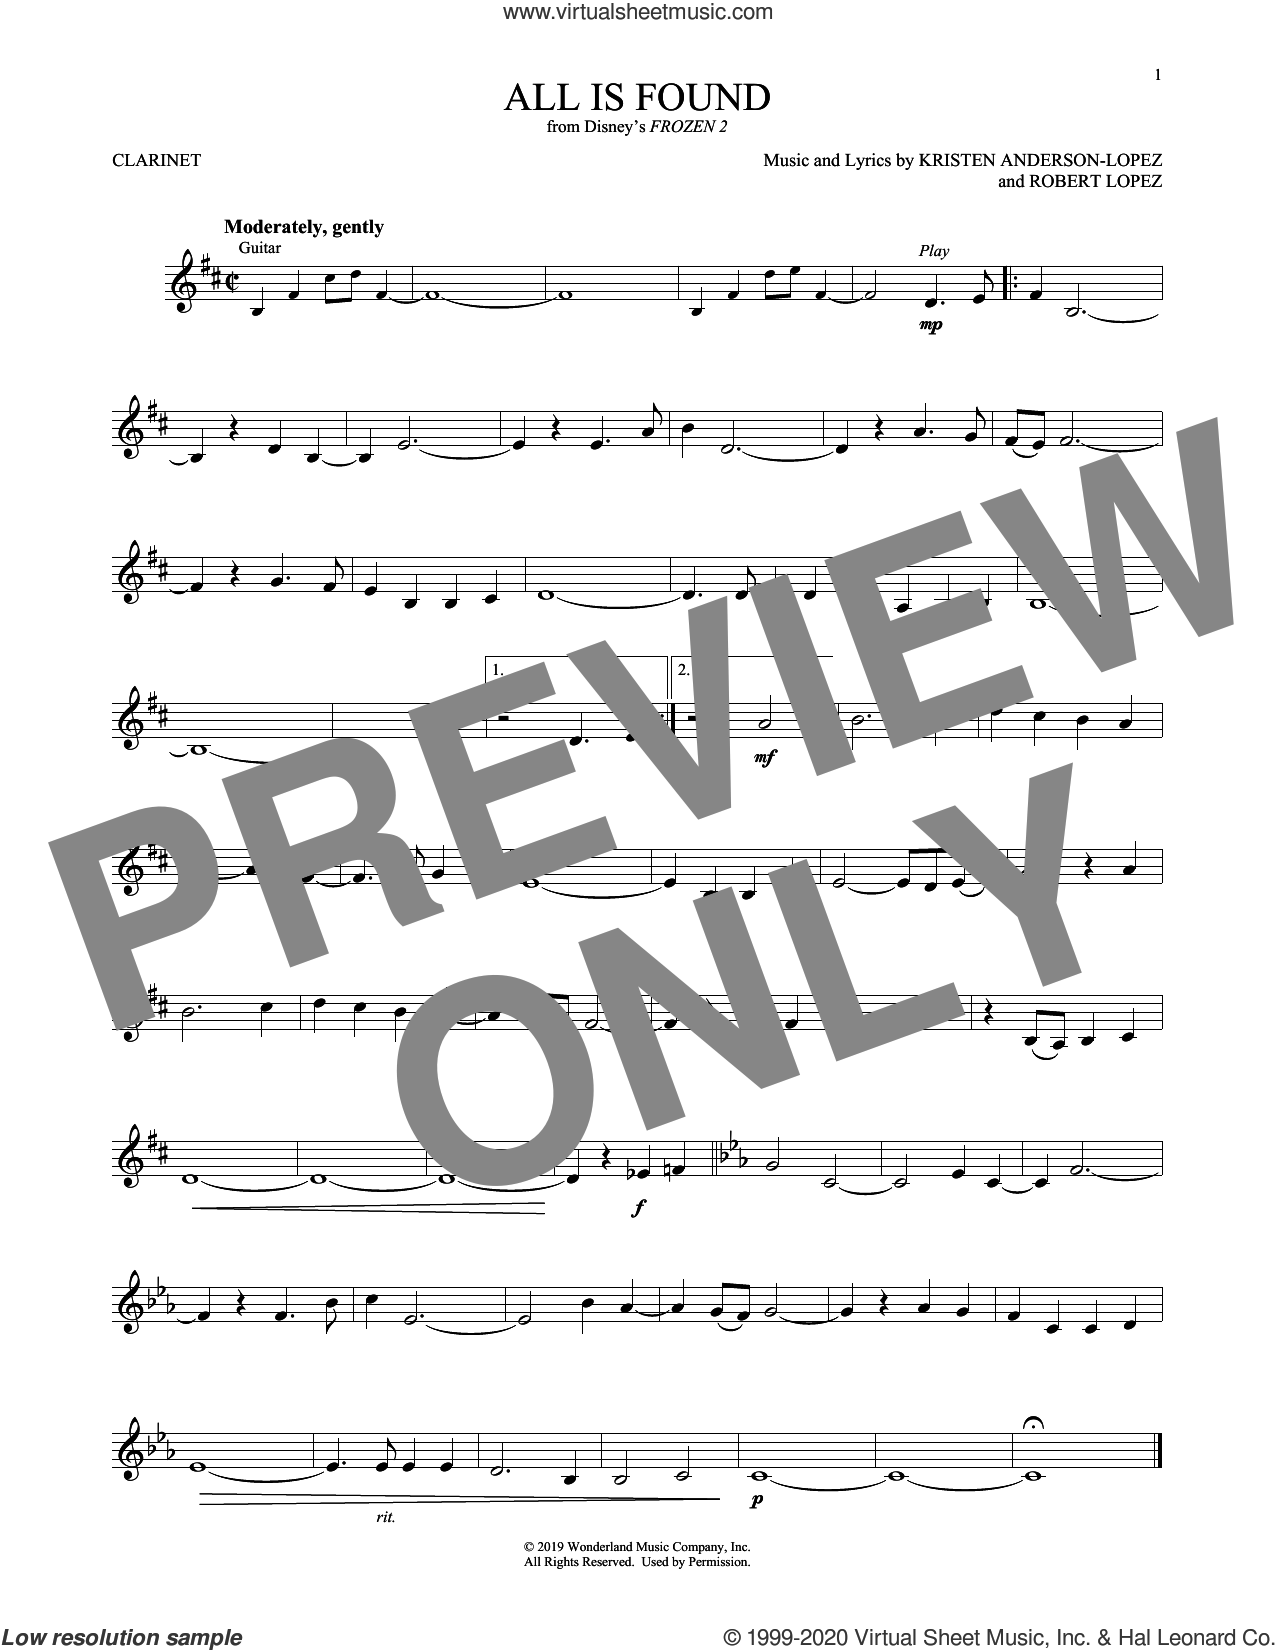 All Is Found (from Disney's Frozen 2) sheet music for clarinet solo by Evan Rachel Wood, Kristen Anderson-Lopez and Robert Lopez, intermediate skill level